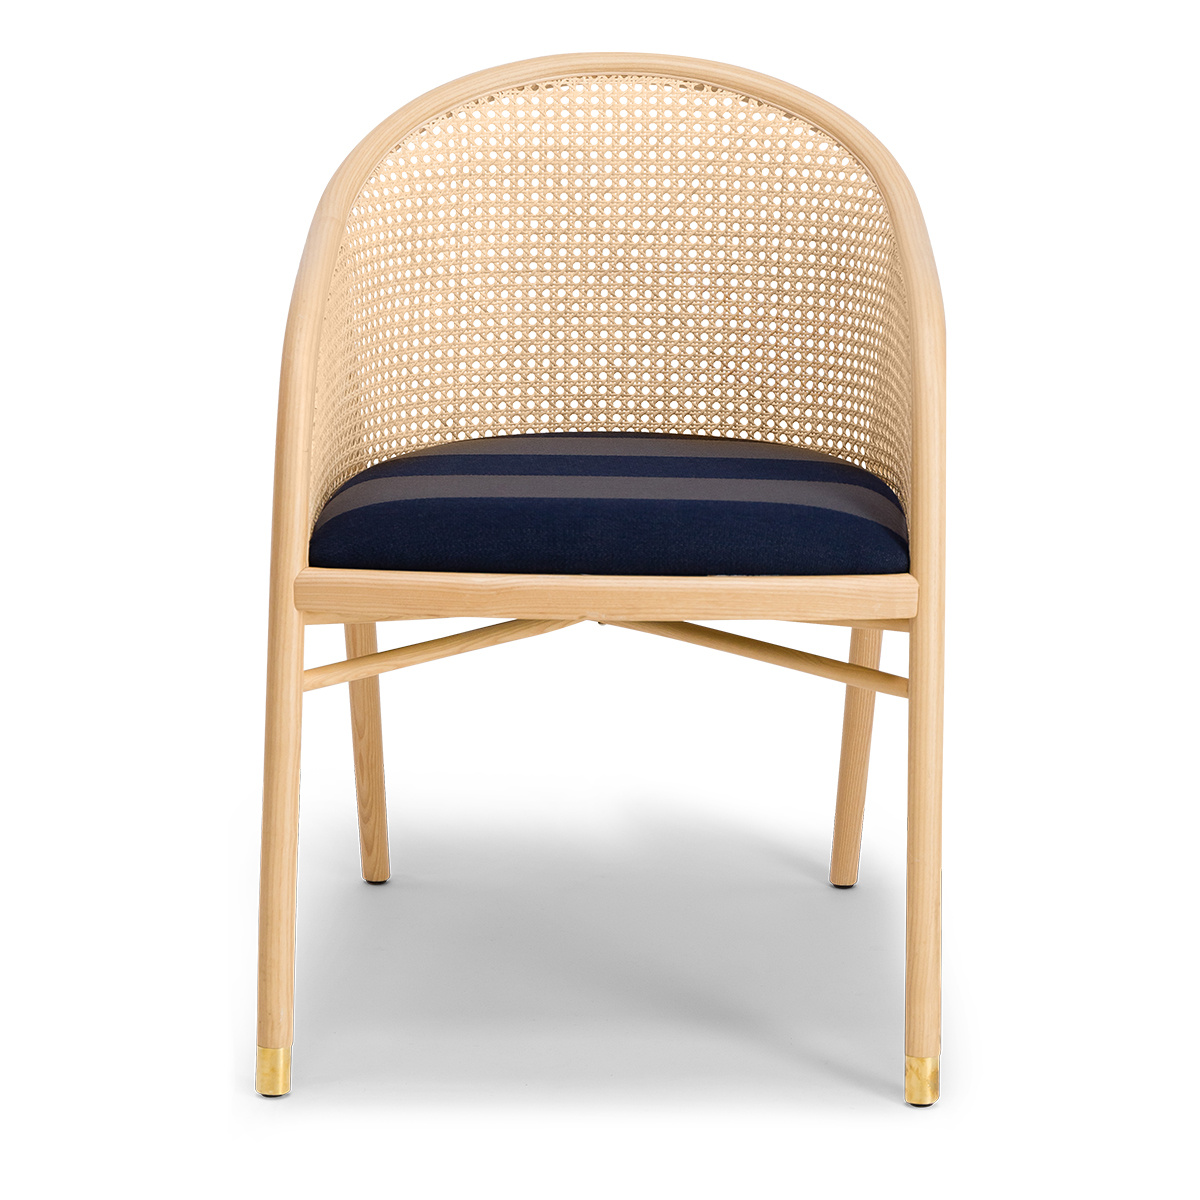 Cavallo Armchair, Kvadrat / Raf Simons Navy Blue Wool with Natural Frame - Limited Edition